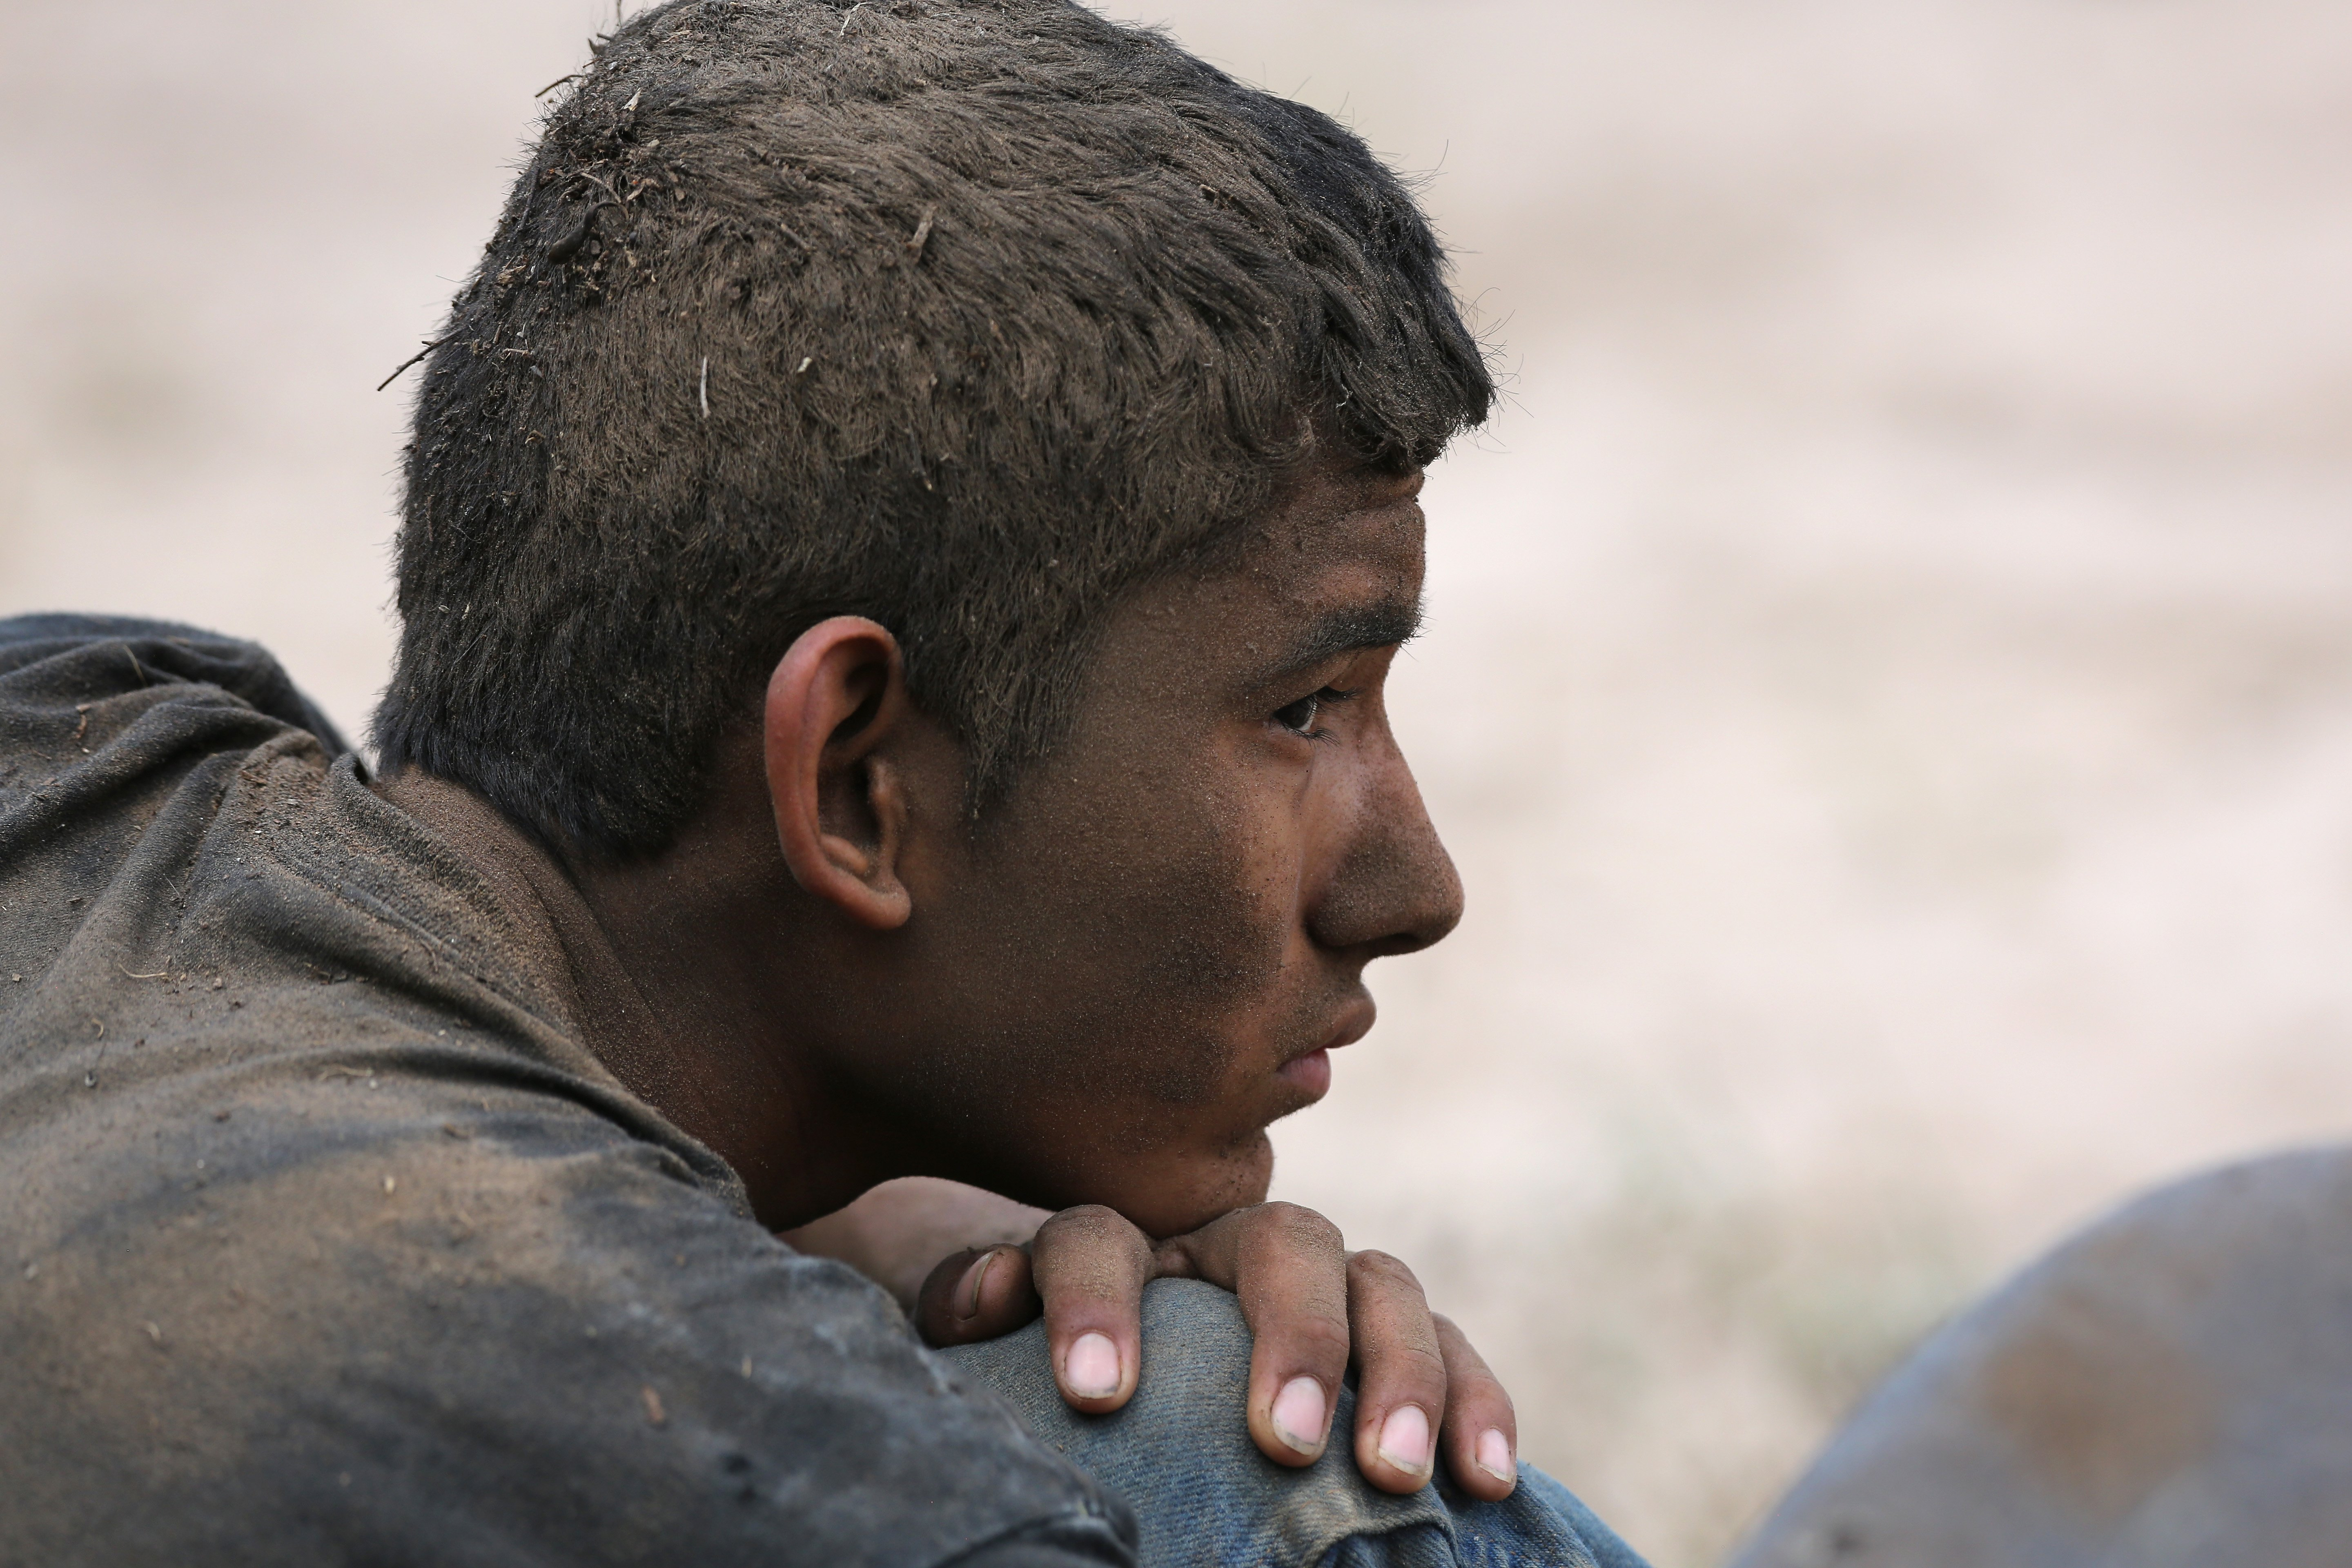 An undocumented immigrant awaits transportation to a processing center after being detained by U.S. Border Patrol agents some 60 miles north of the U.S. Mexico border near Falfurrias, Texas on July 23, 2014.